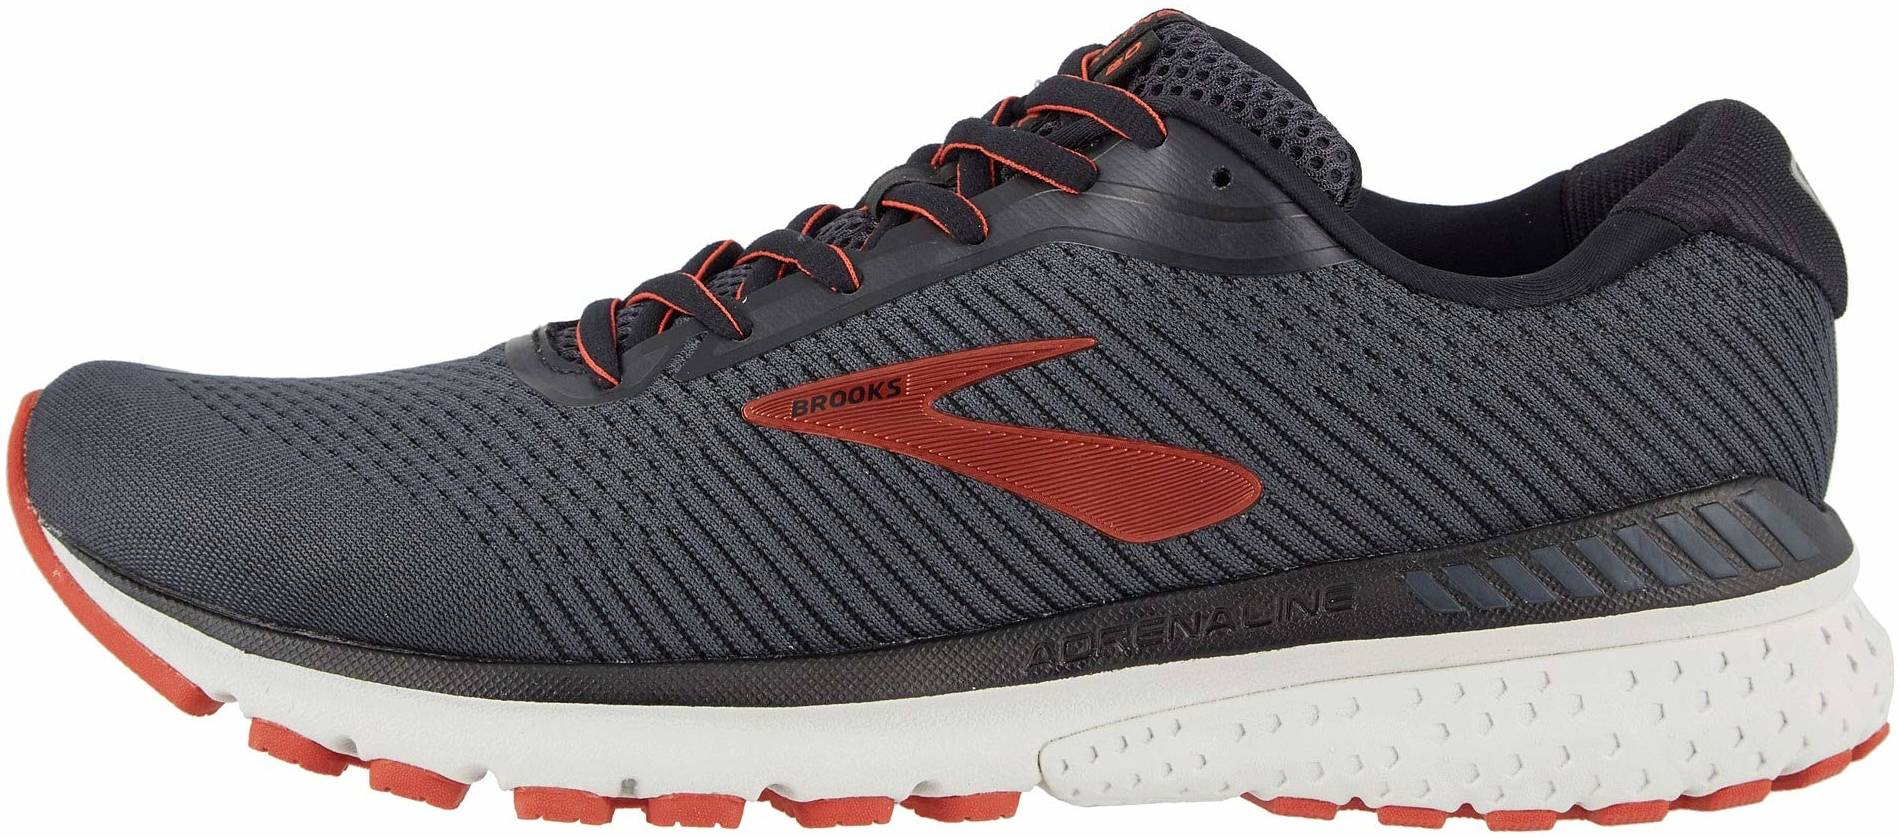 Save 47 On Running Shoes 2118 Models In Stock Runrepeat